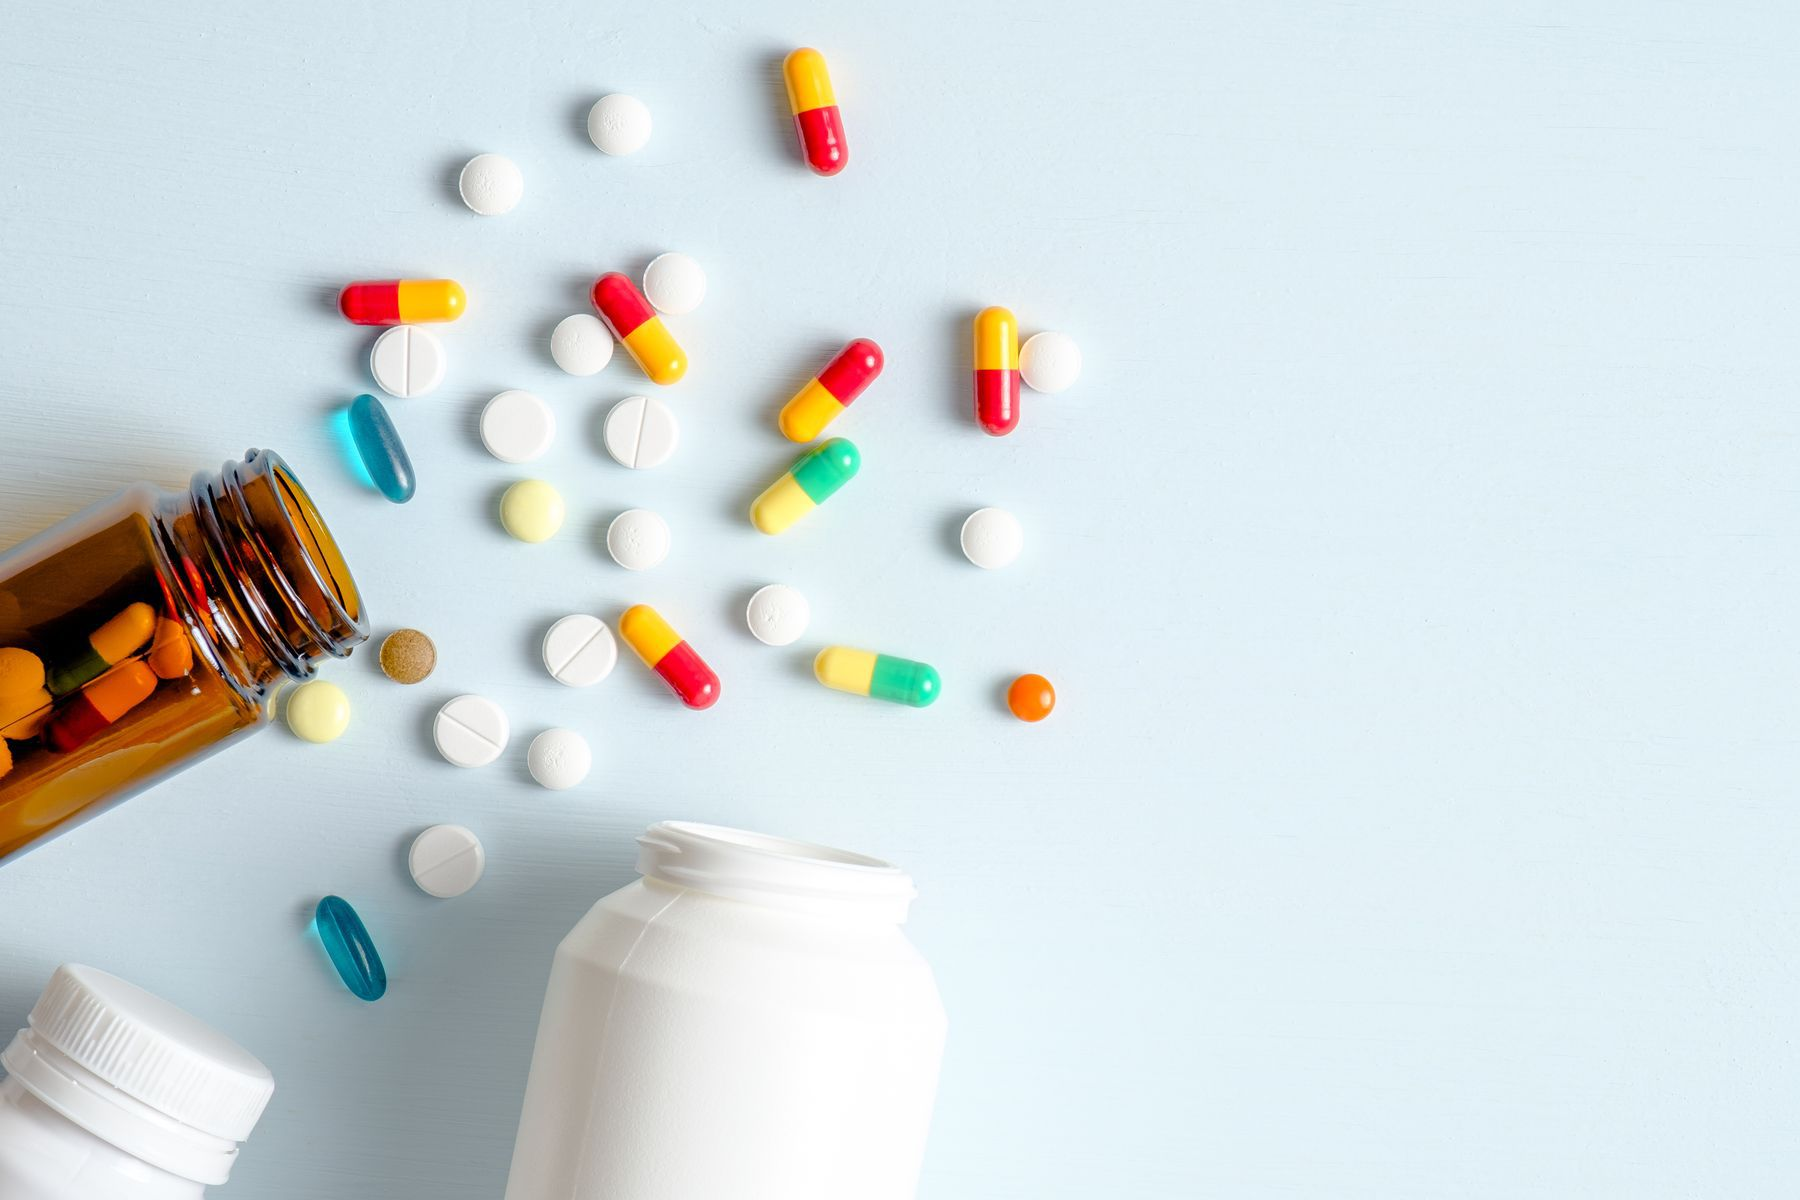 Can You Be Compensated for Damages Caused by Pharmacy Errors